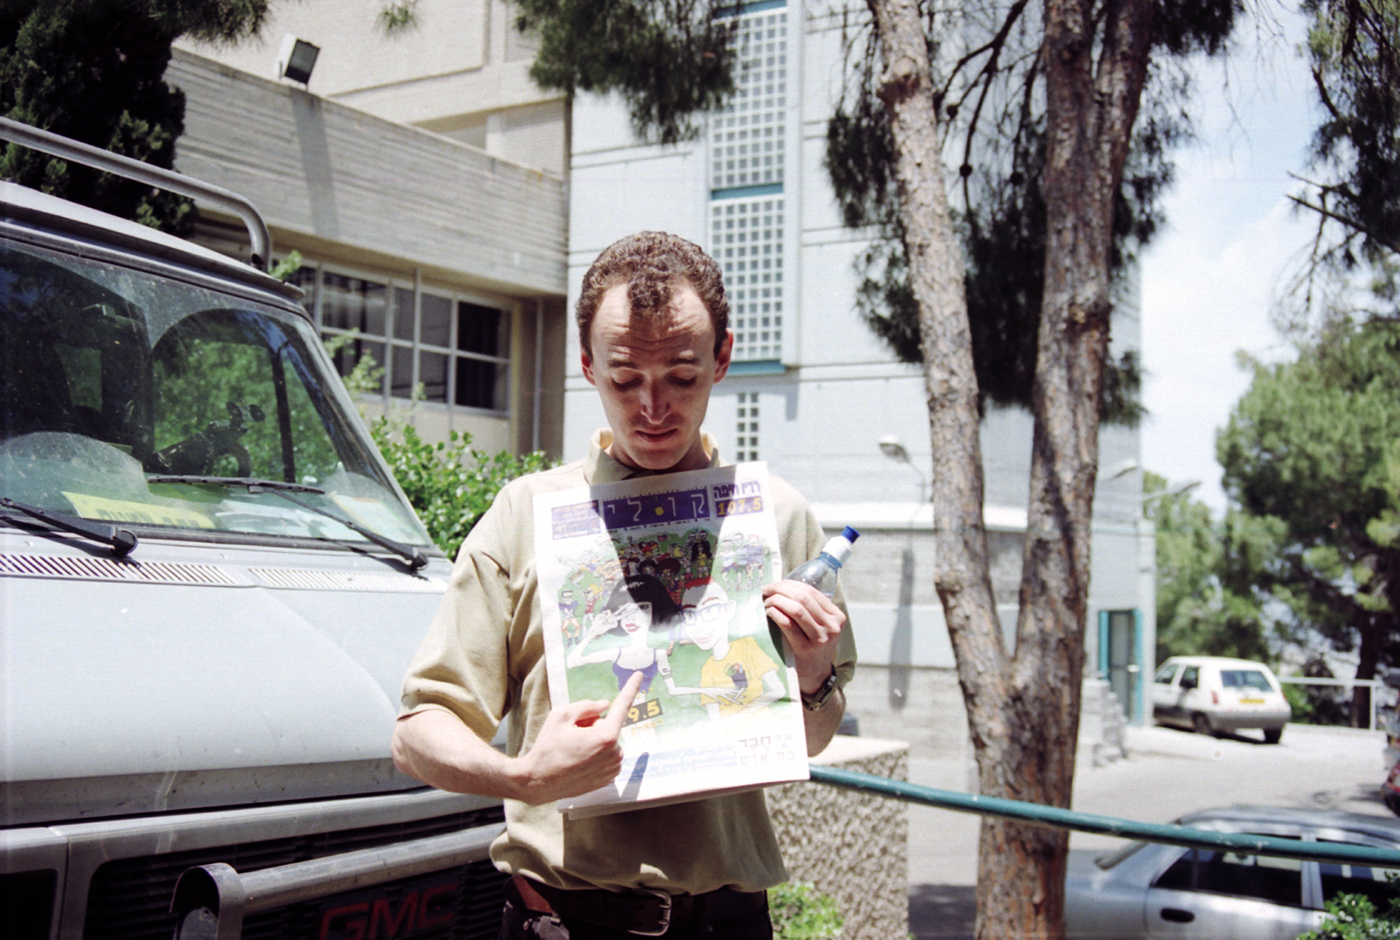 Technion - student day 1998 Shalom Asayag